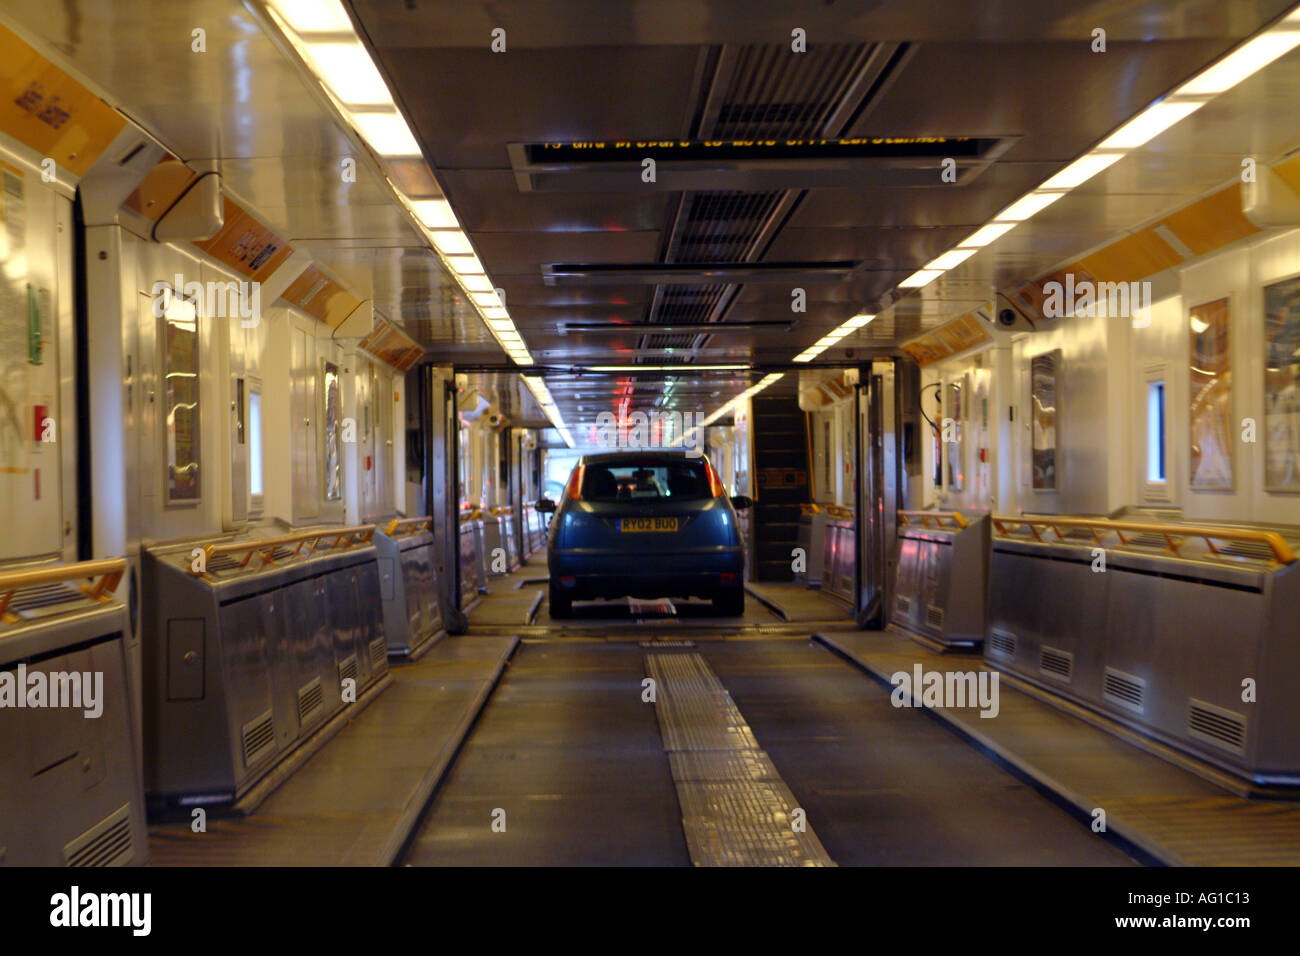 Eurotunnel Interior Of Carriage Cross Channel Train Car Disembarks